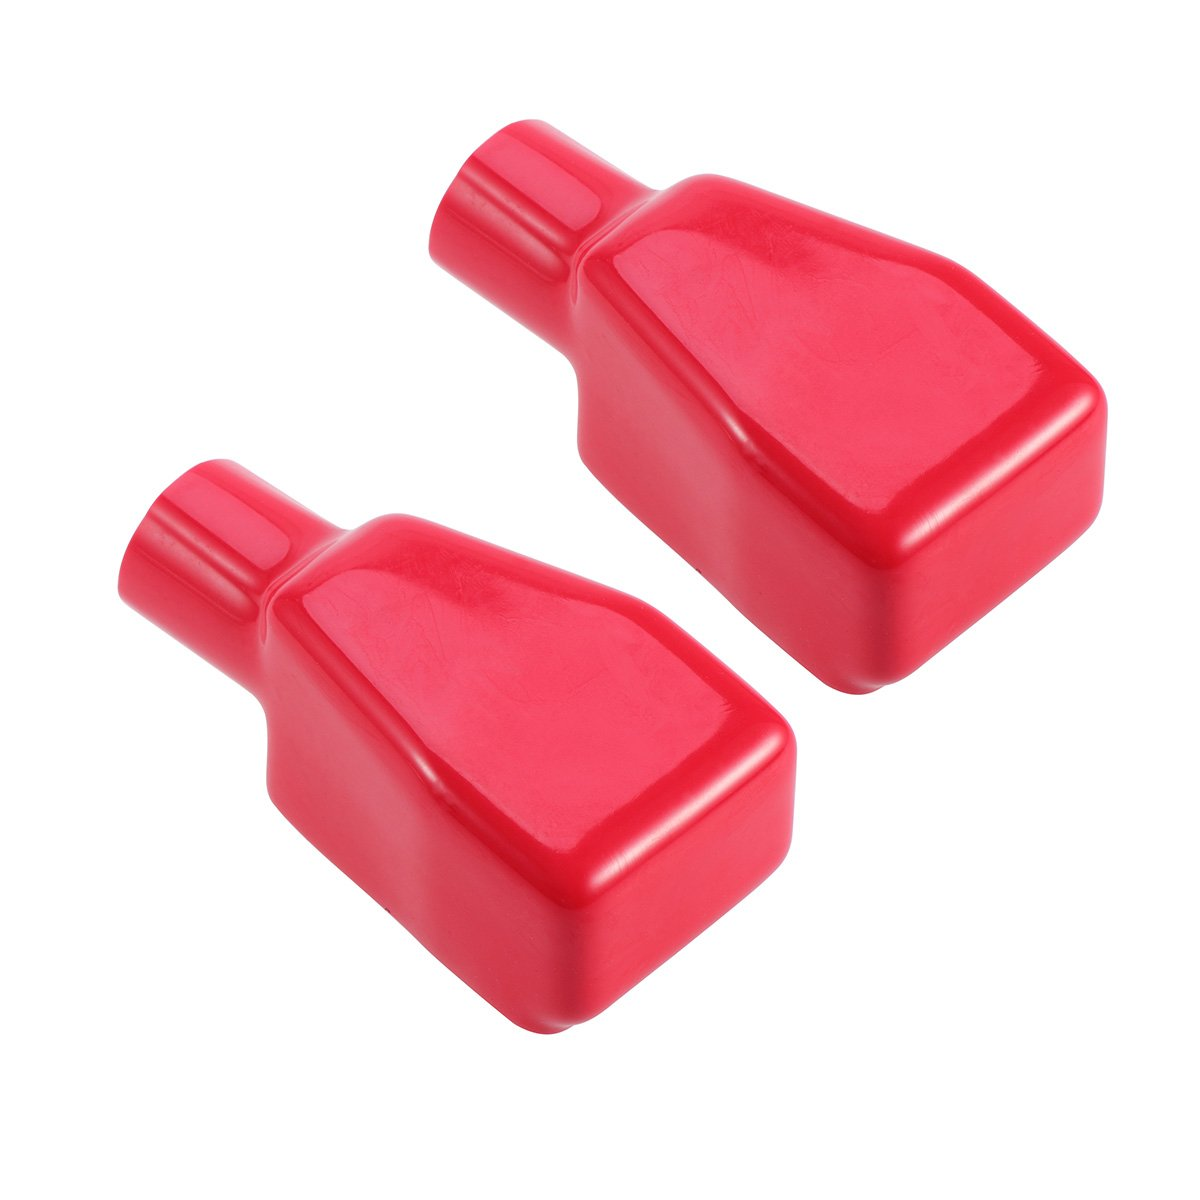 WINOMO 2PCS Positive Battery Terminal Covers Top Post Flexible Car Battery Terminal Insulating Protector Caps - Size L (Red)